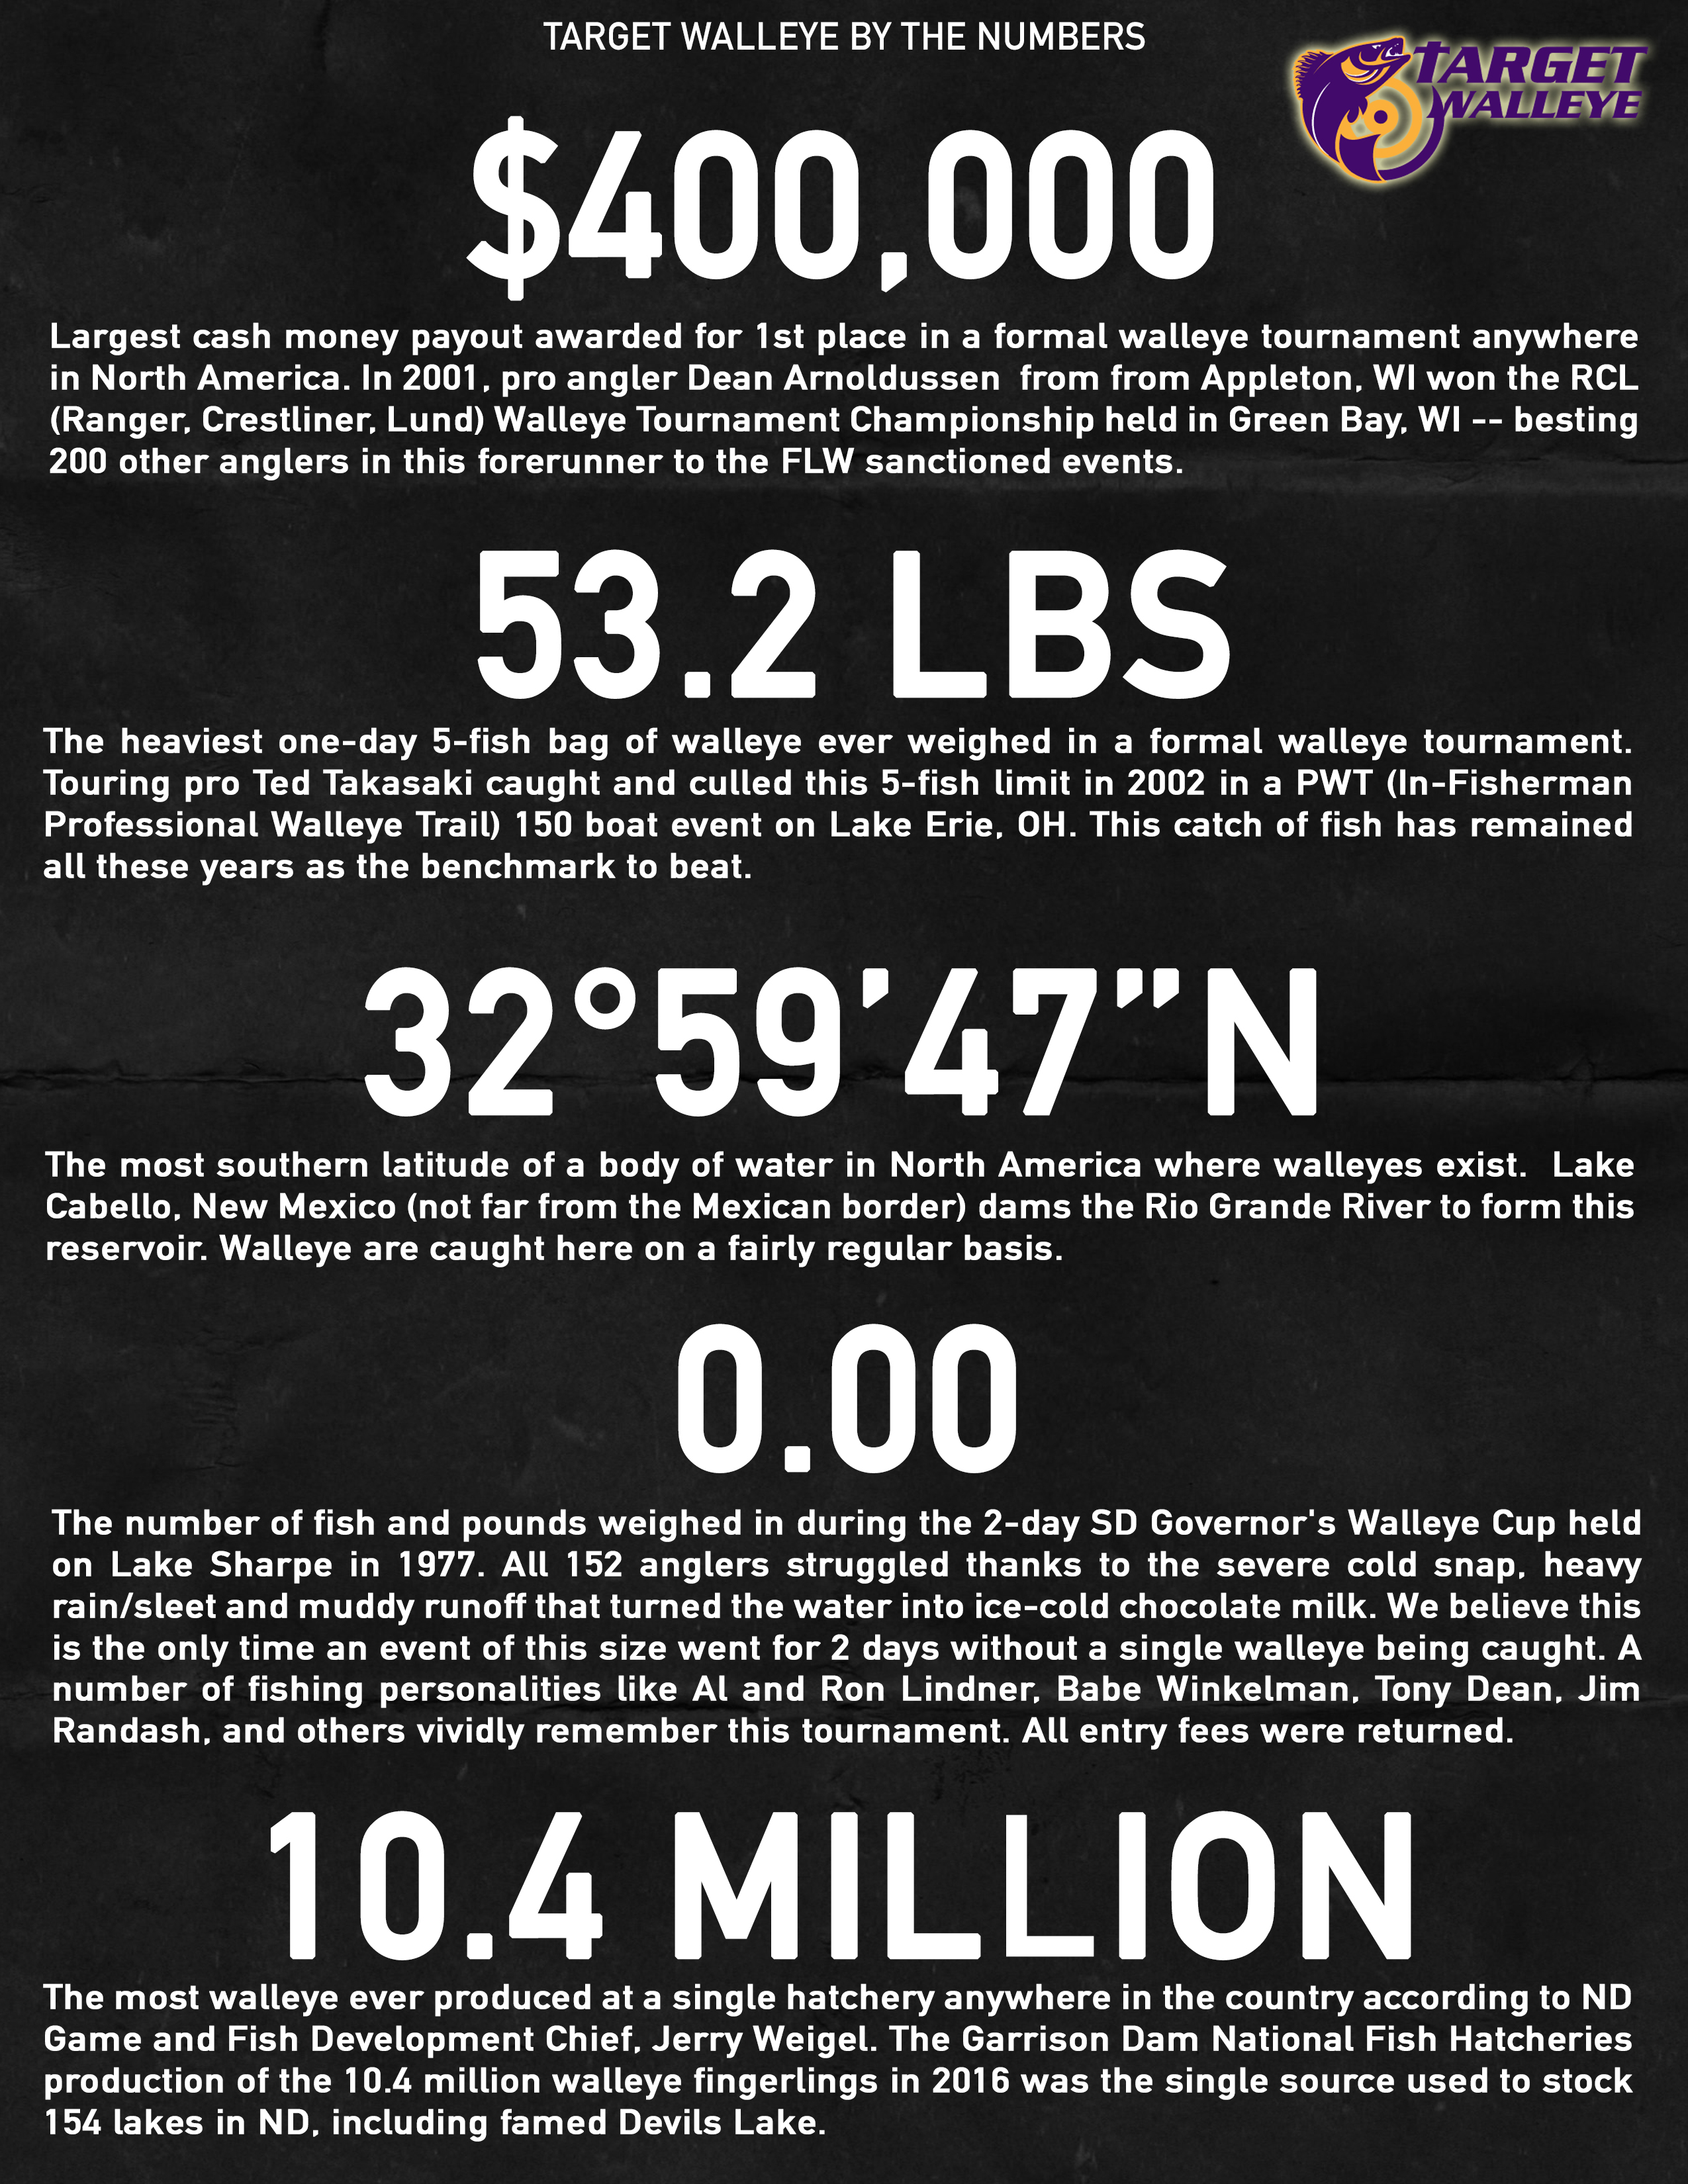 TW by the numbers 8-8-16